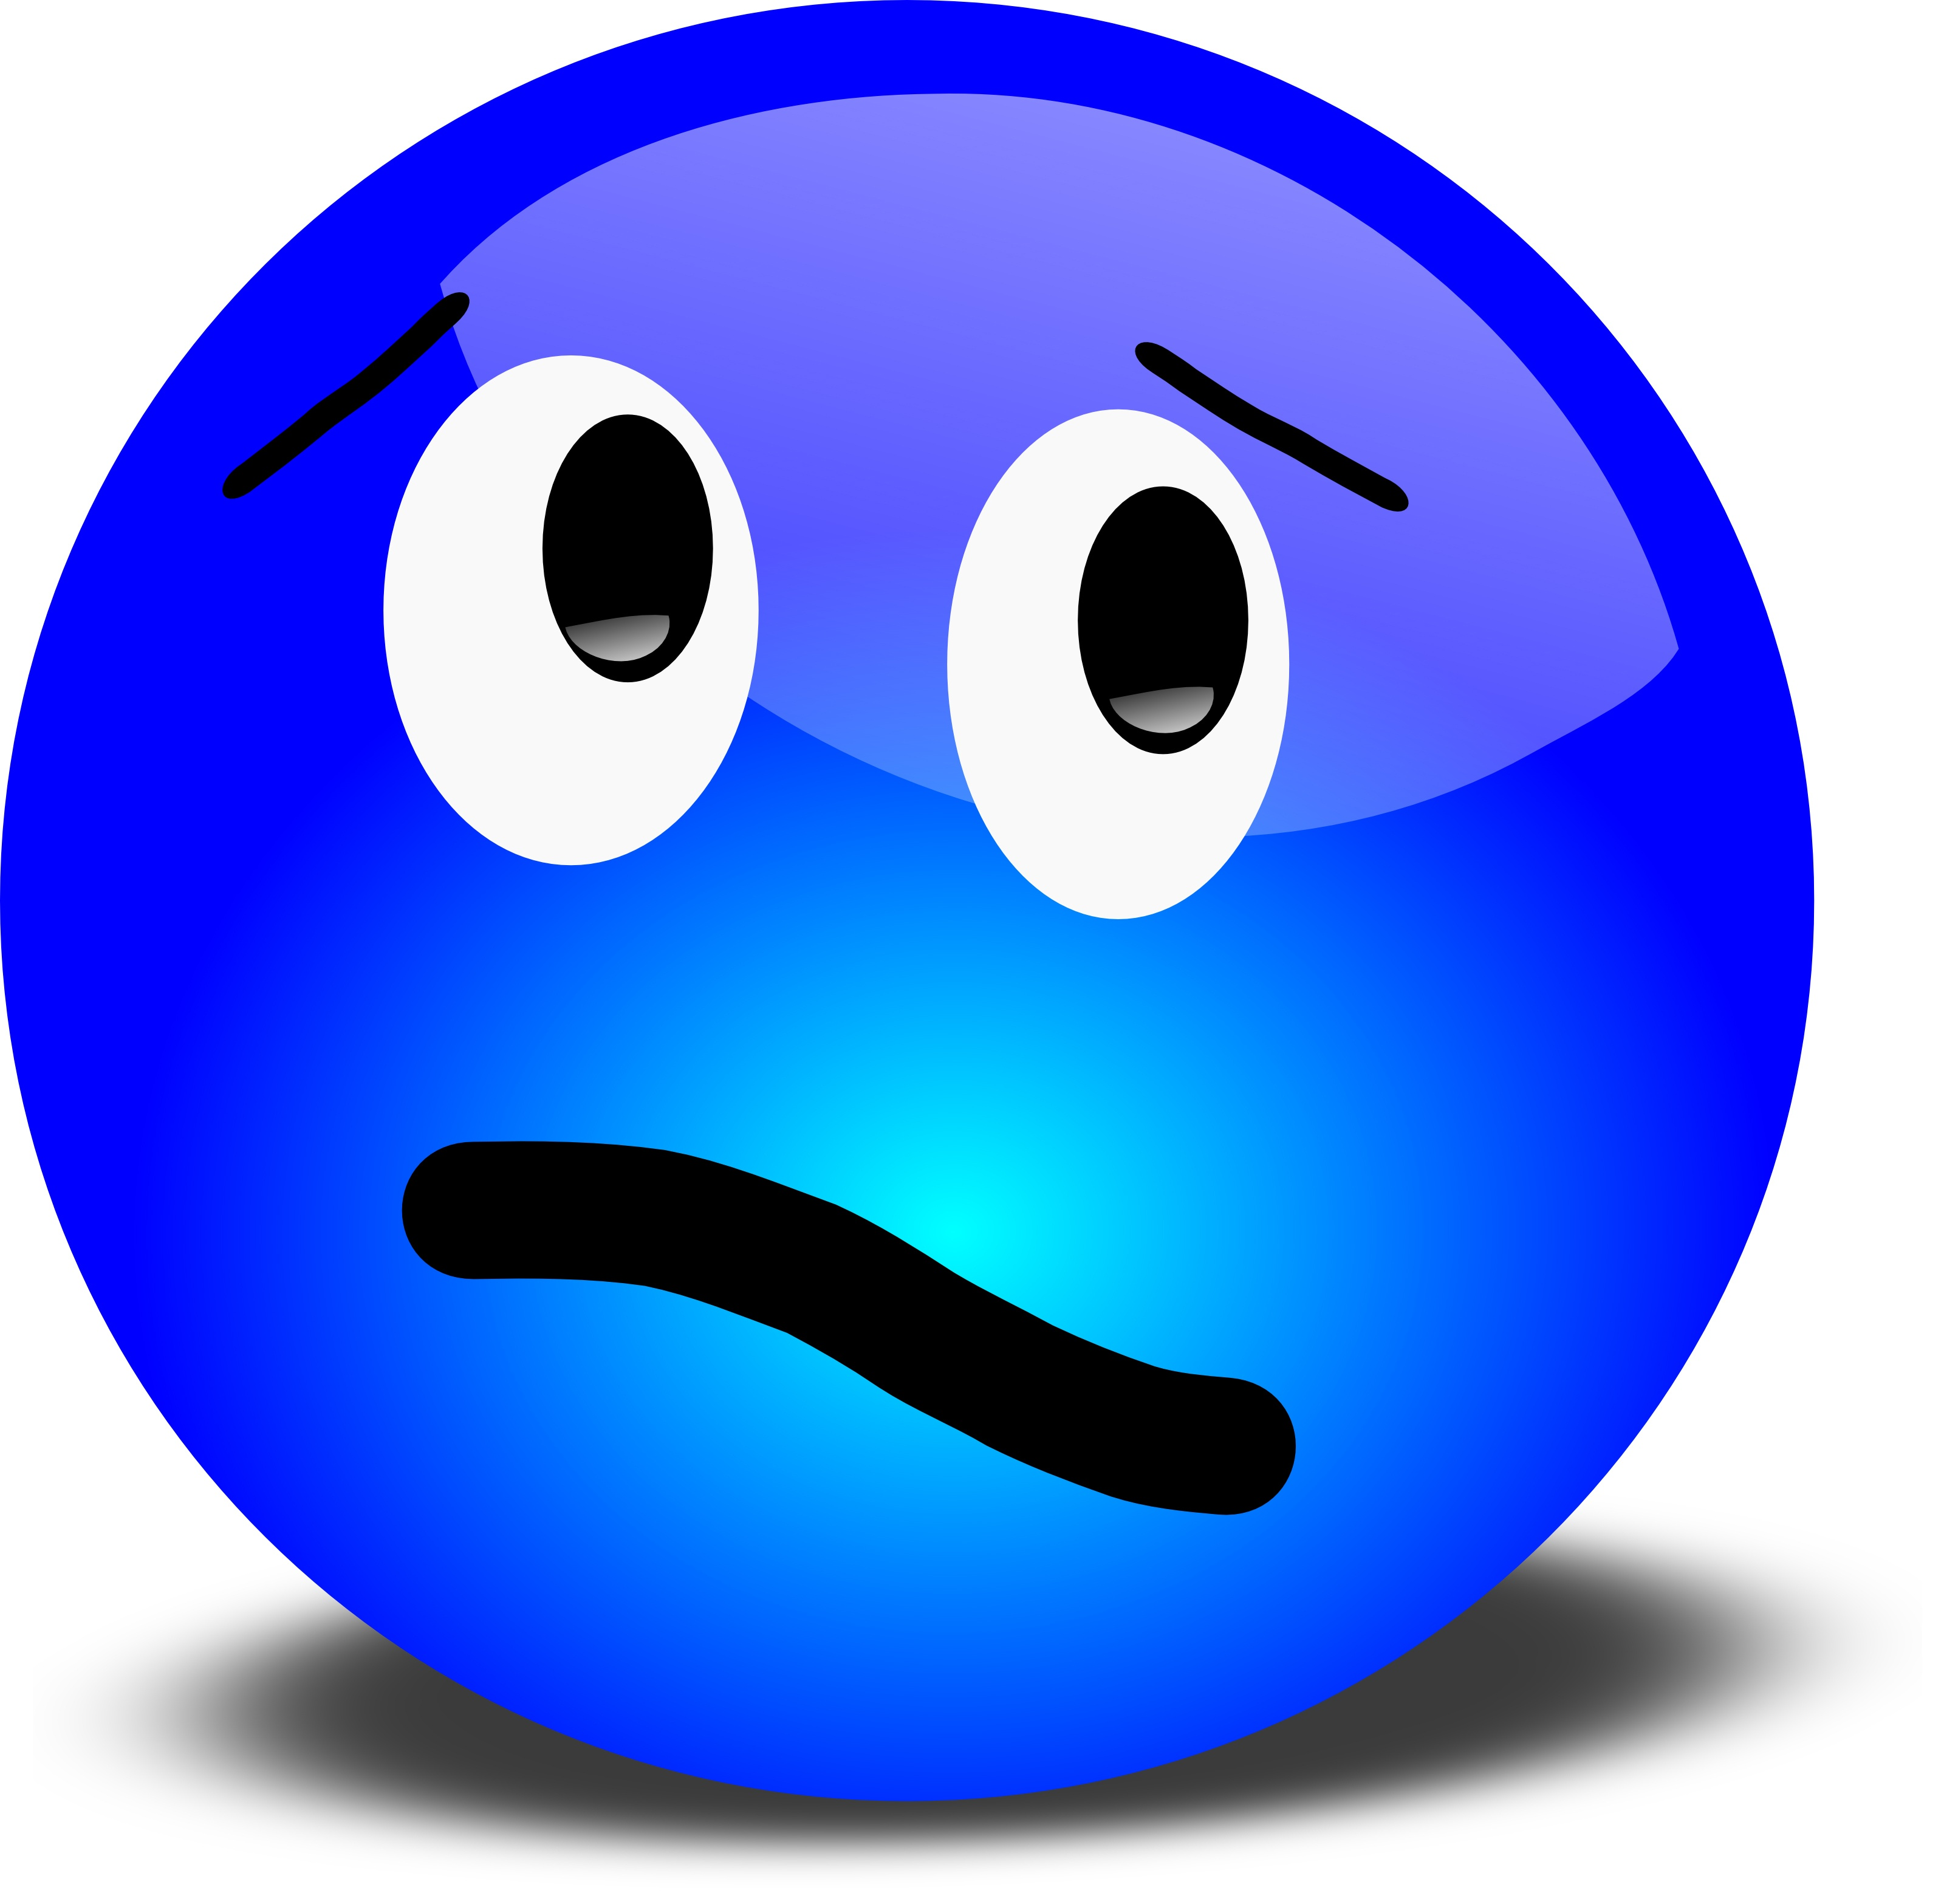 Free Pictures Of A Sad Face, Download Free Clip Art, Free Clip Art - Free Printable Sad Faces